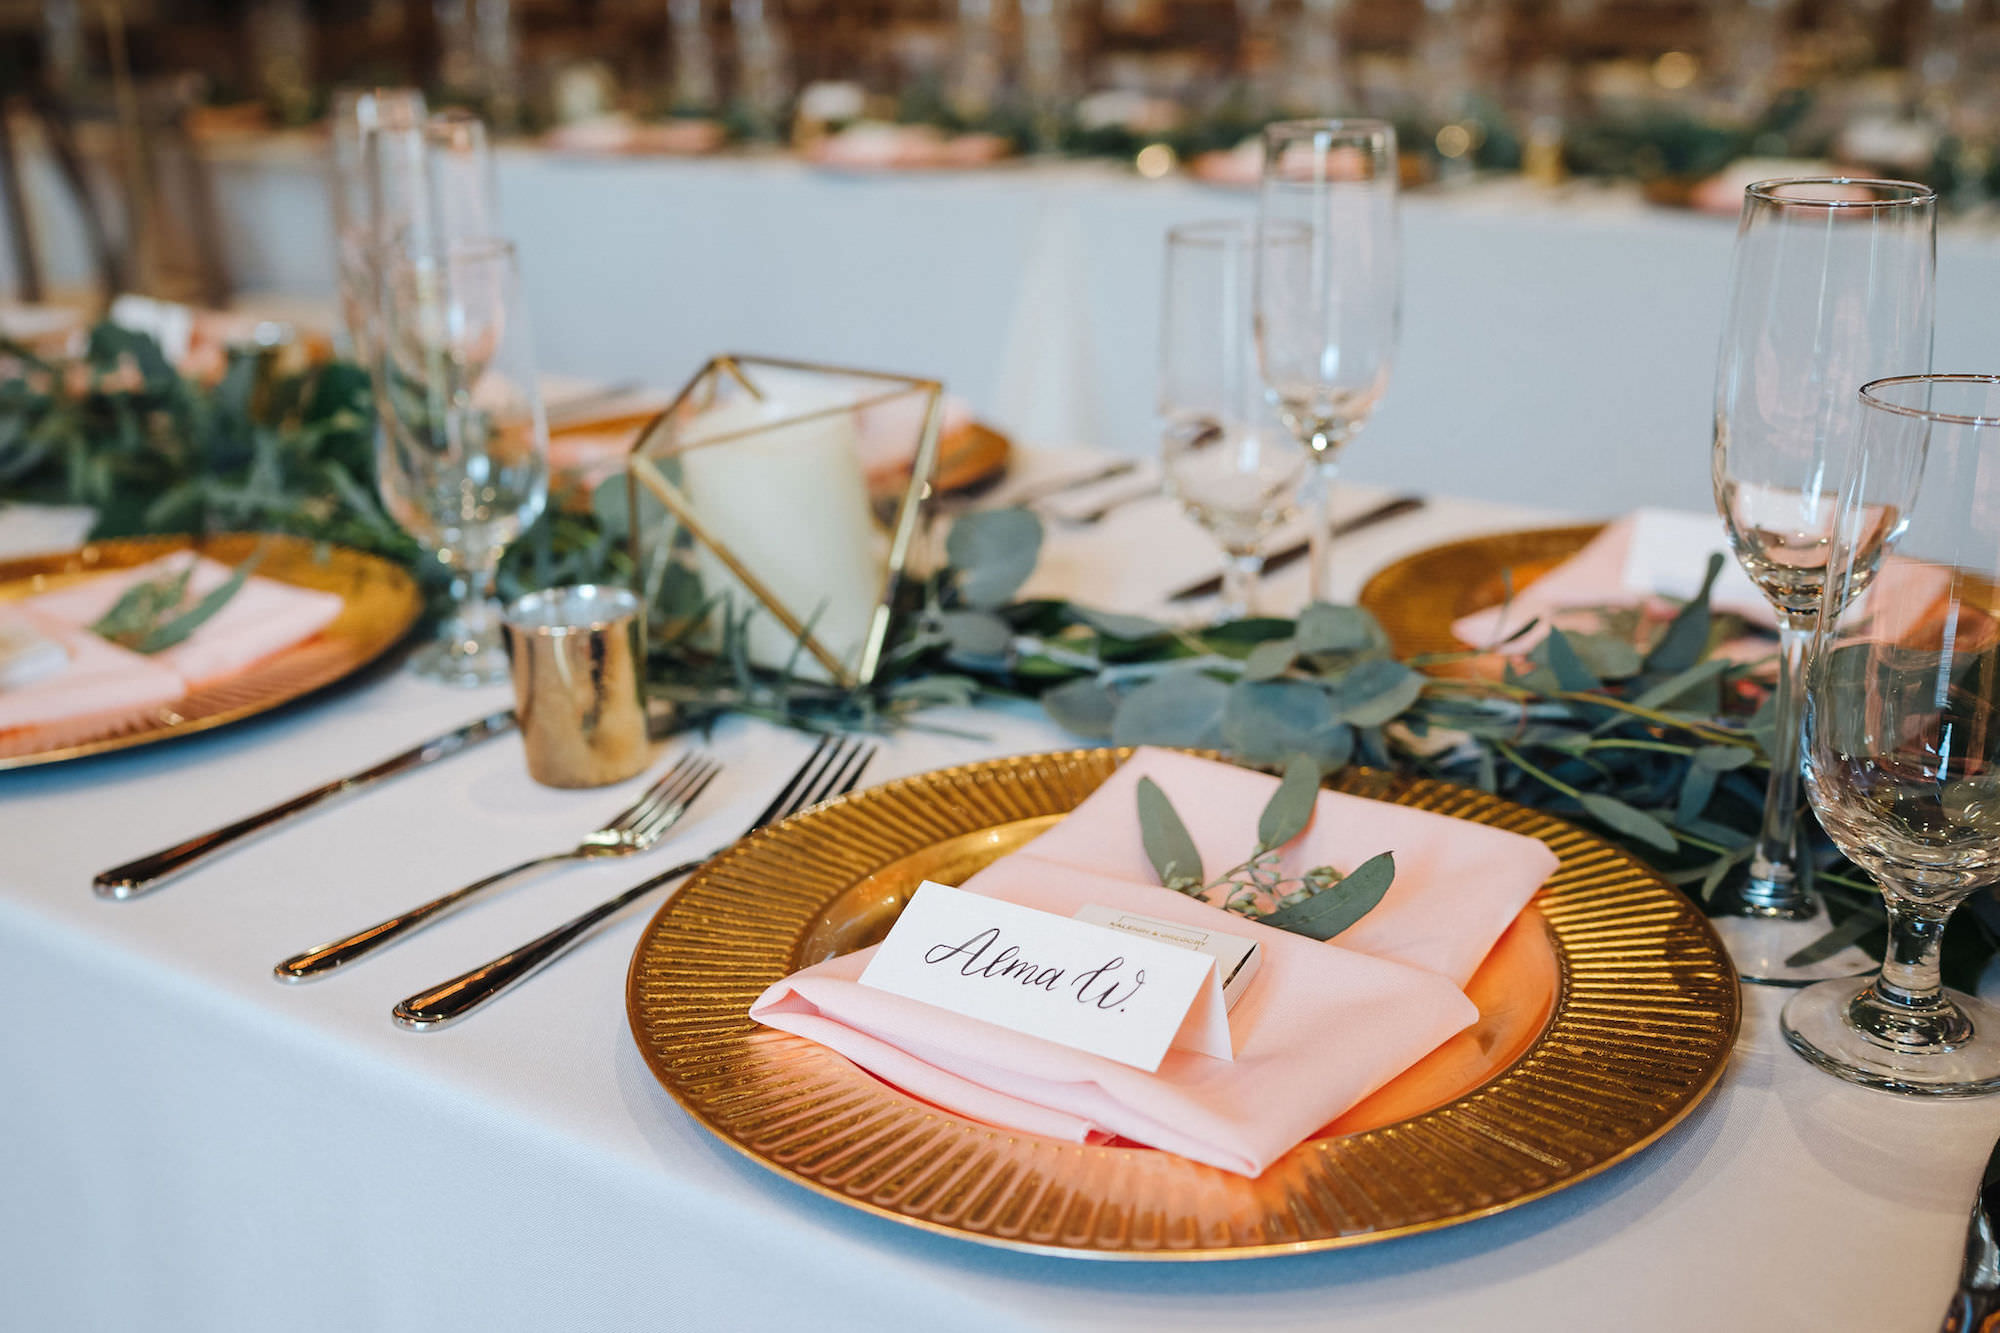 St. Petersburg Florida Wedding Venue   Red Mesa Events   Reception Long Banquet Feasting Tables   Wood Cross Back French Country Chairs   Greenery Garland Centerpiece with Gold Chargers and Blush Napkins   Gold Geometric Candles   Calligraphy Place Cards